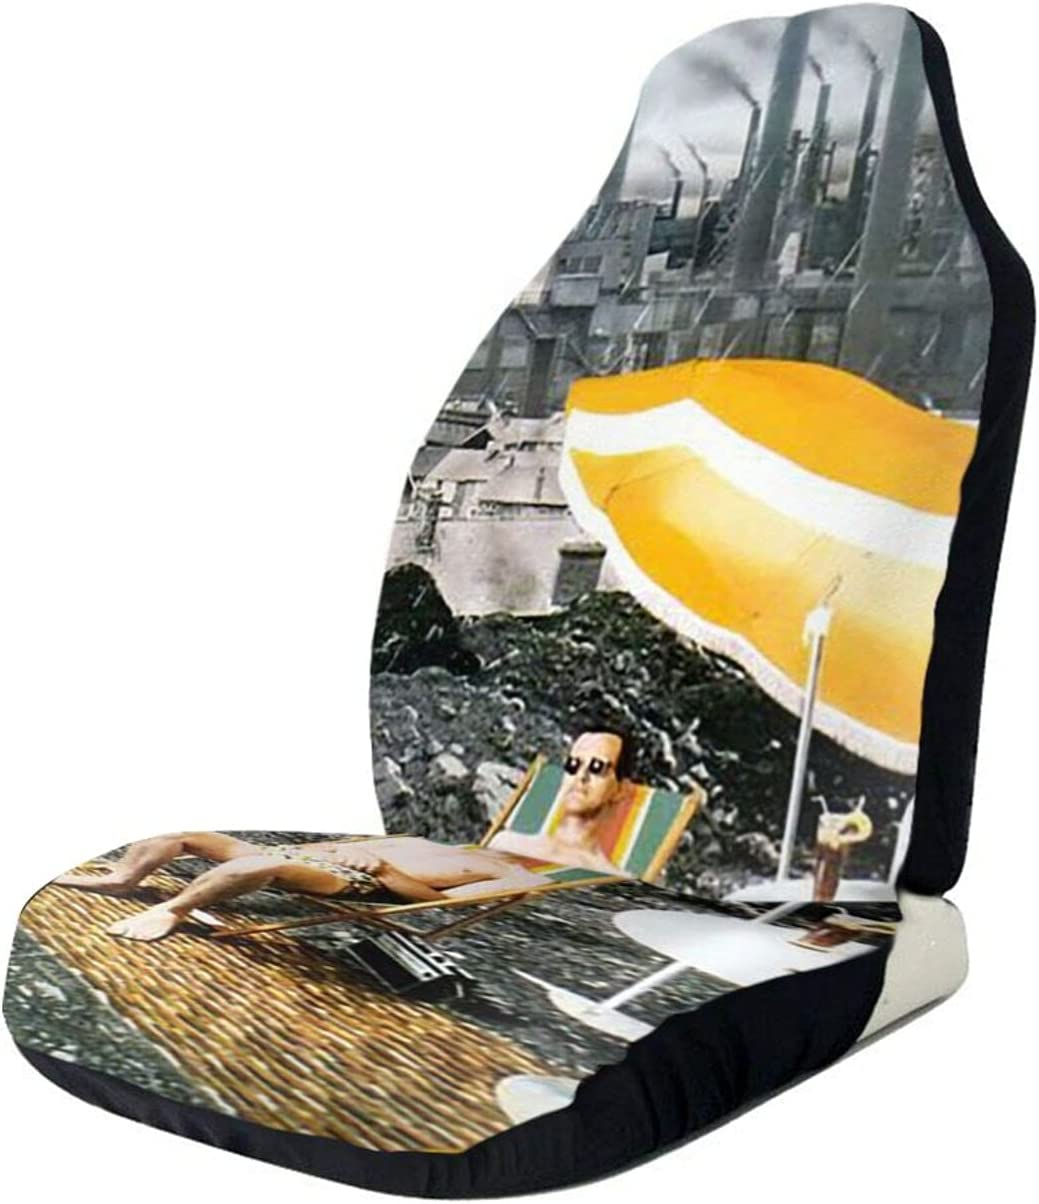 Supertramp Opening large release sale Car seat Cover dust-Proof Available in All Sun-Proof New arrival